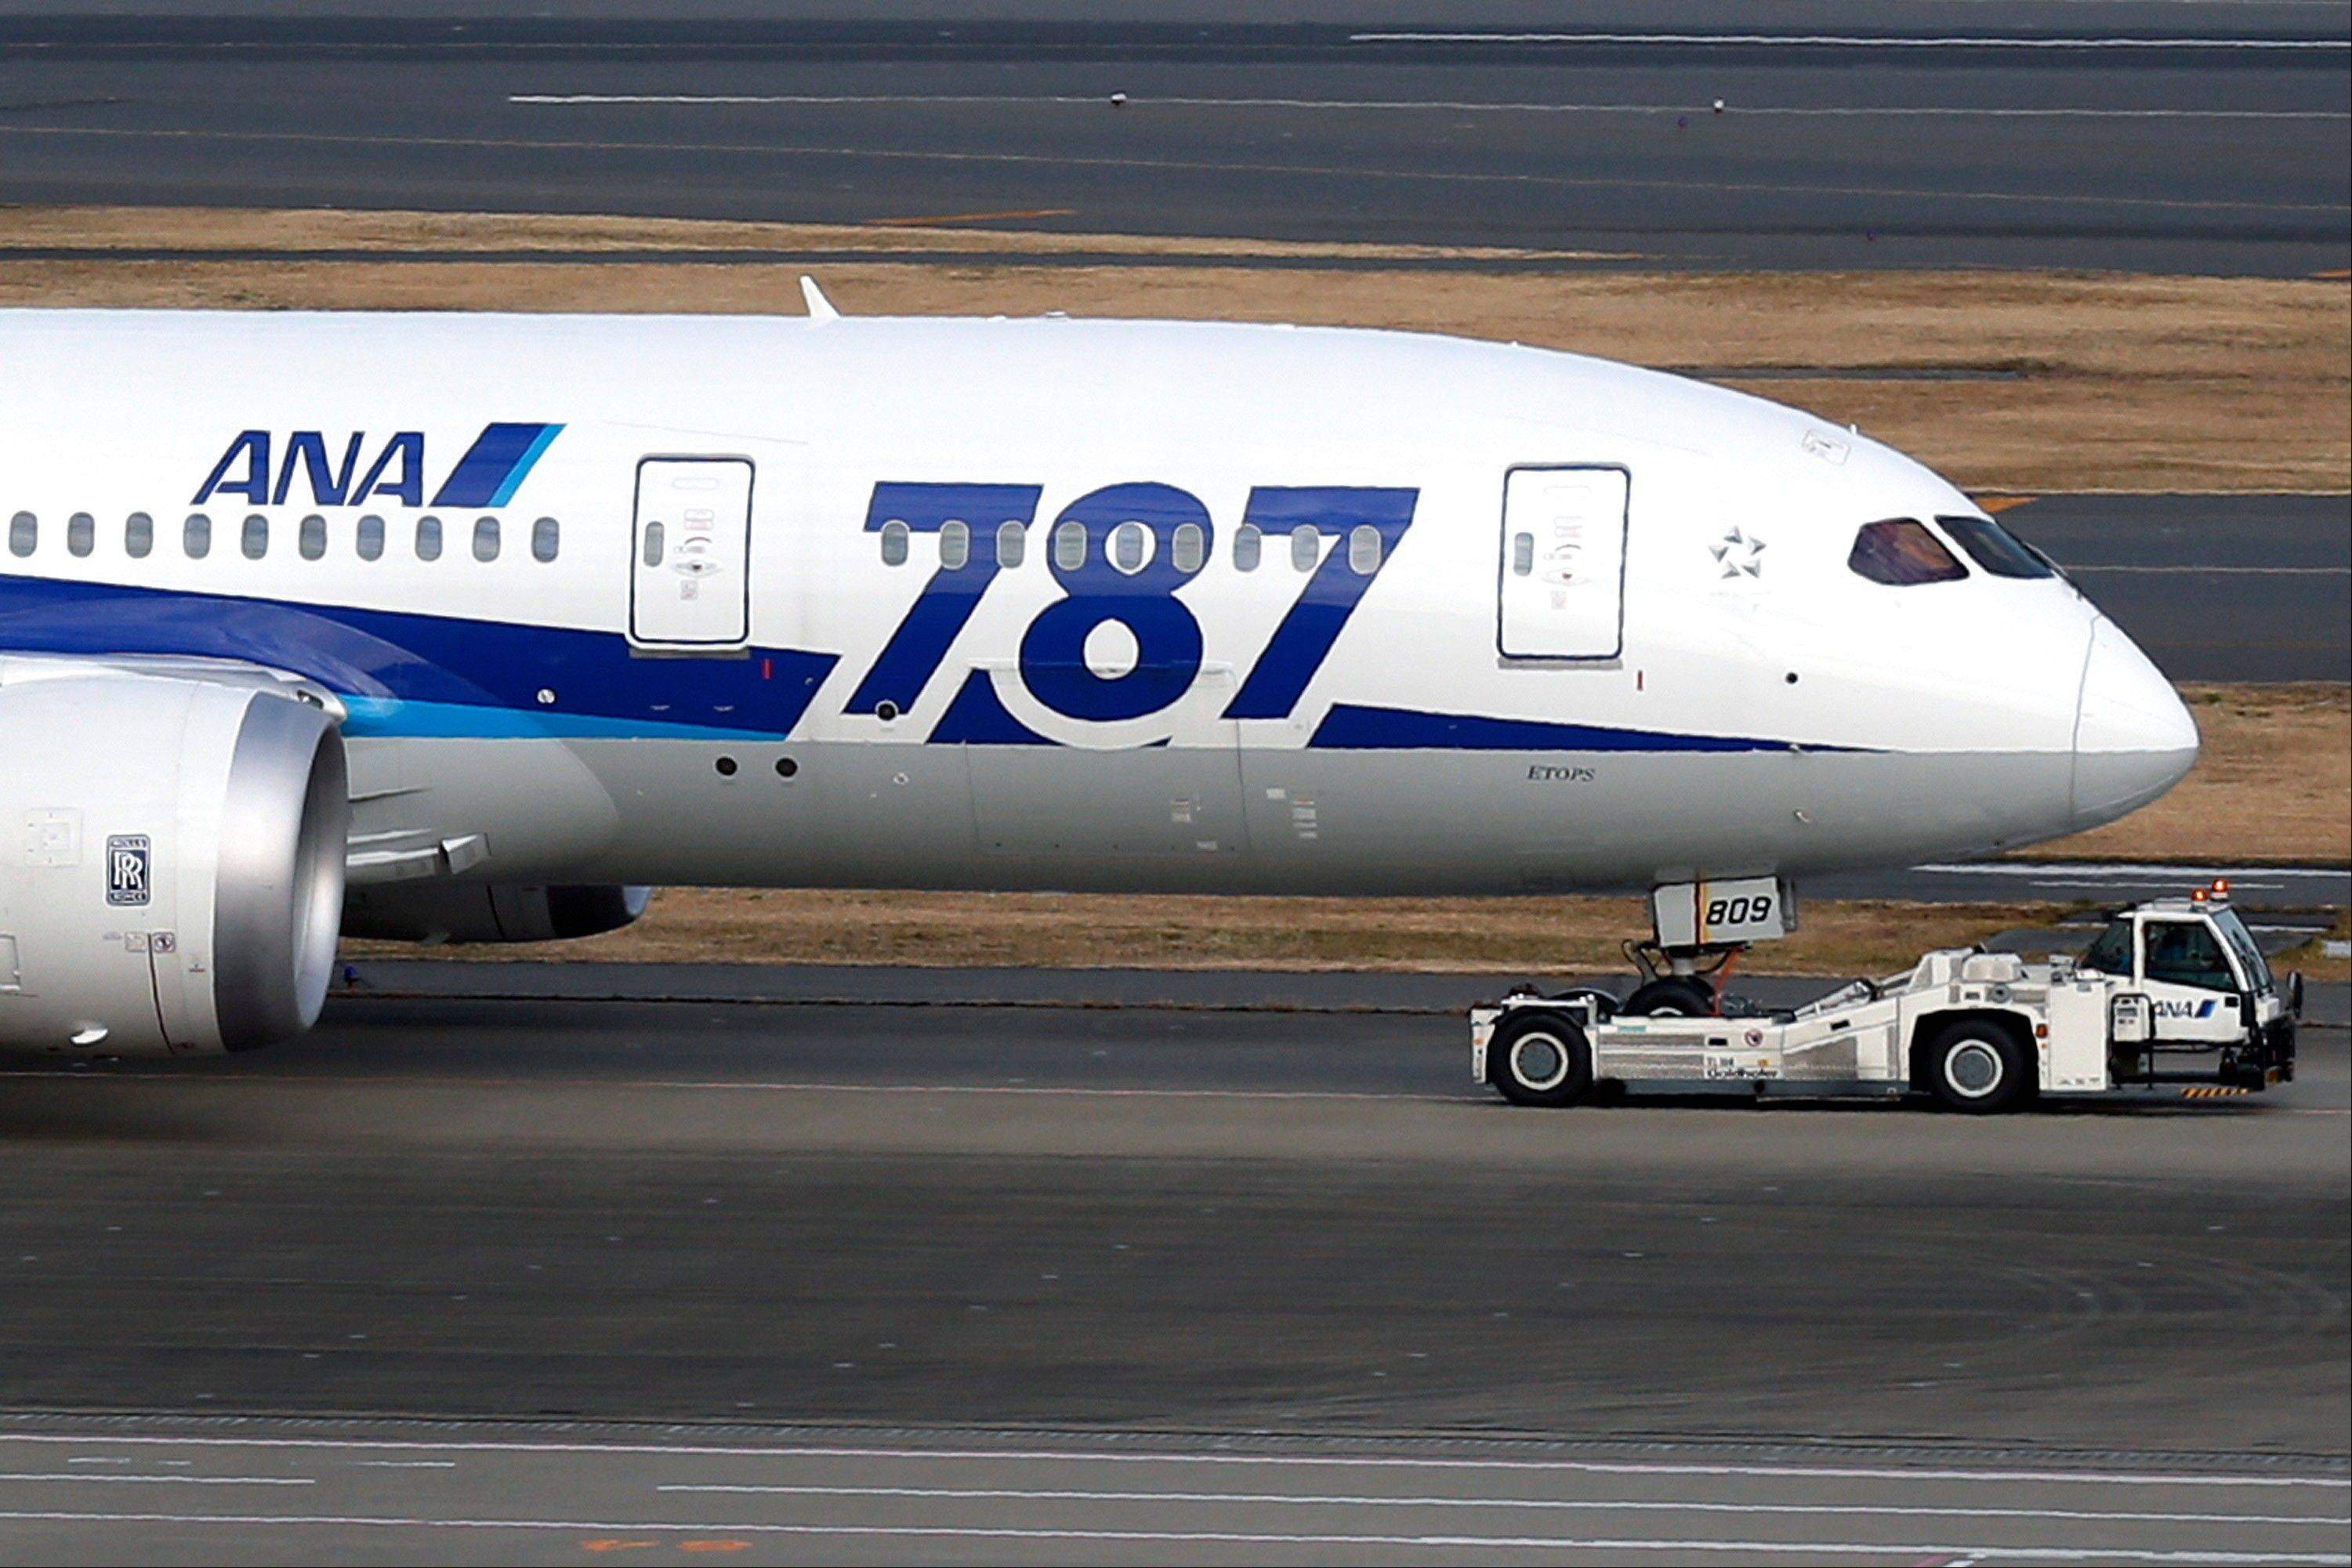 A Boeing Co. 787 Dreamliner aircraft operated by All Nippon Airways Co. (ANA) taxies at Haneda Airport in Tokyo, Japan.